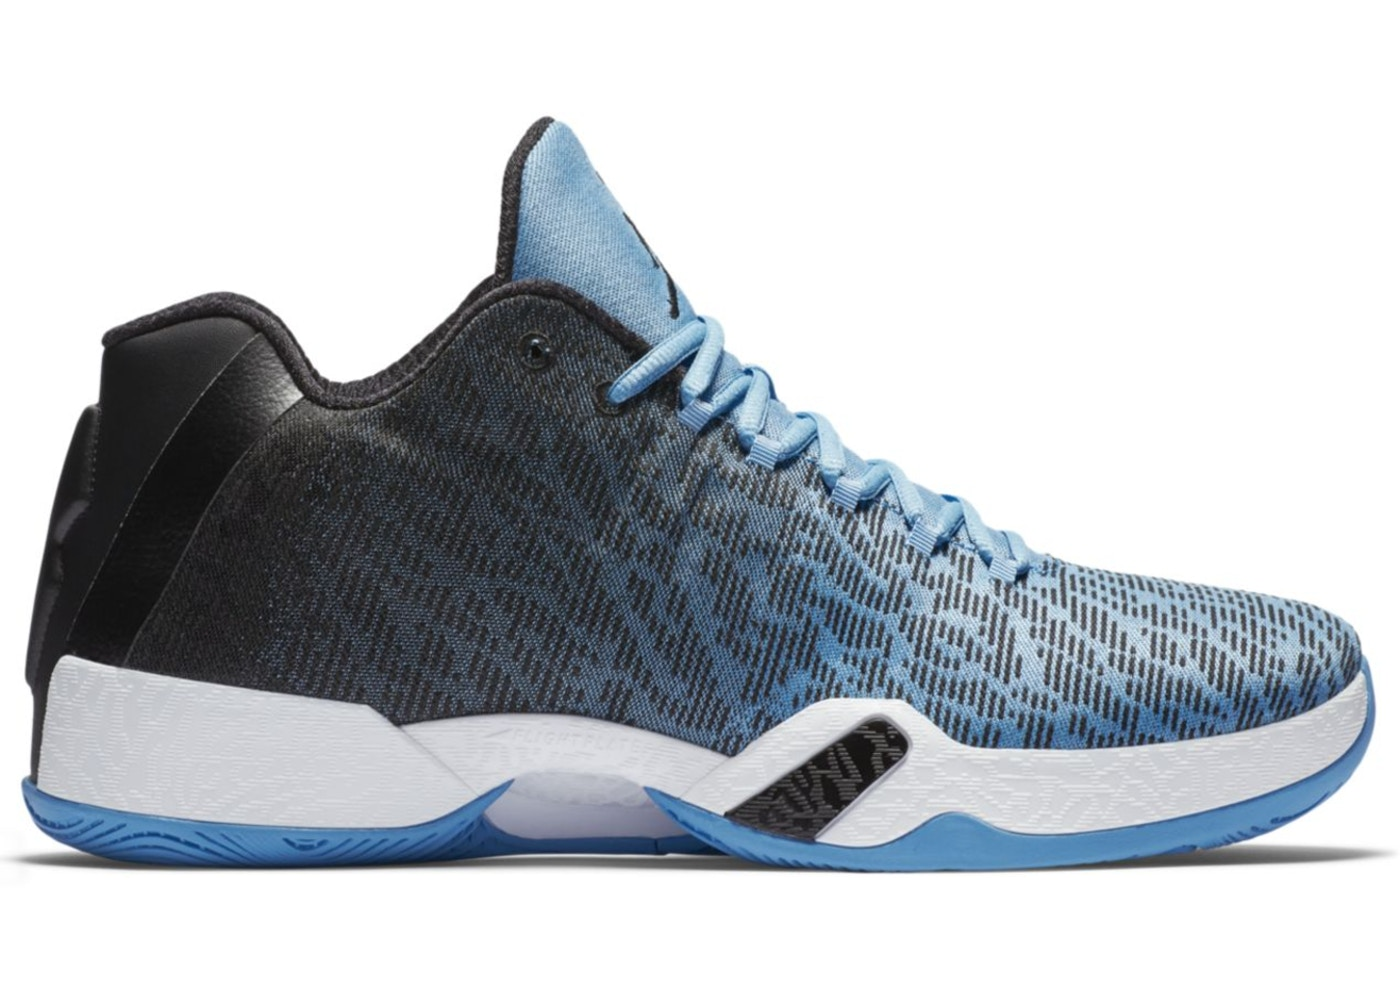 hot sales 1a9d3 ecc30 Jordan XX9 Low UNC